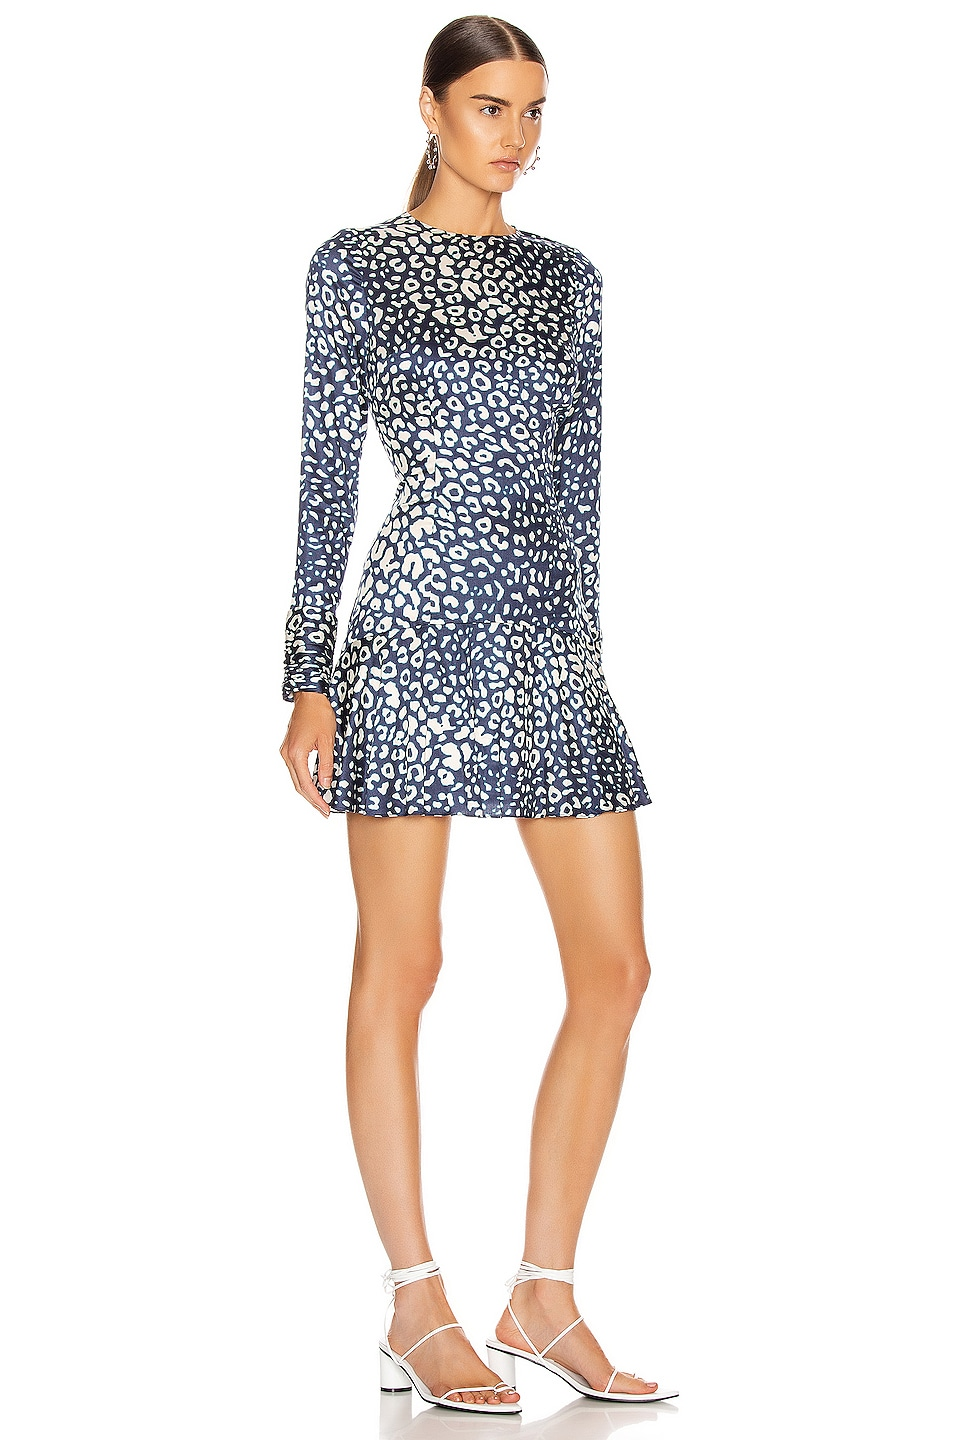 Image 2 of Alexis Madhu Dress in Marine Leopard